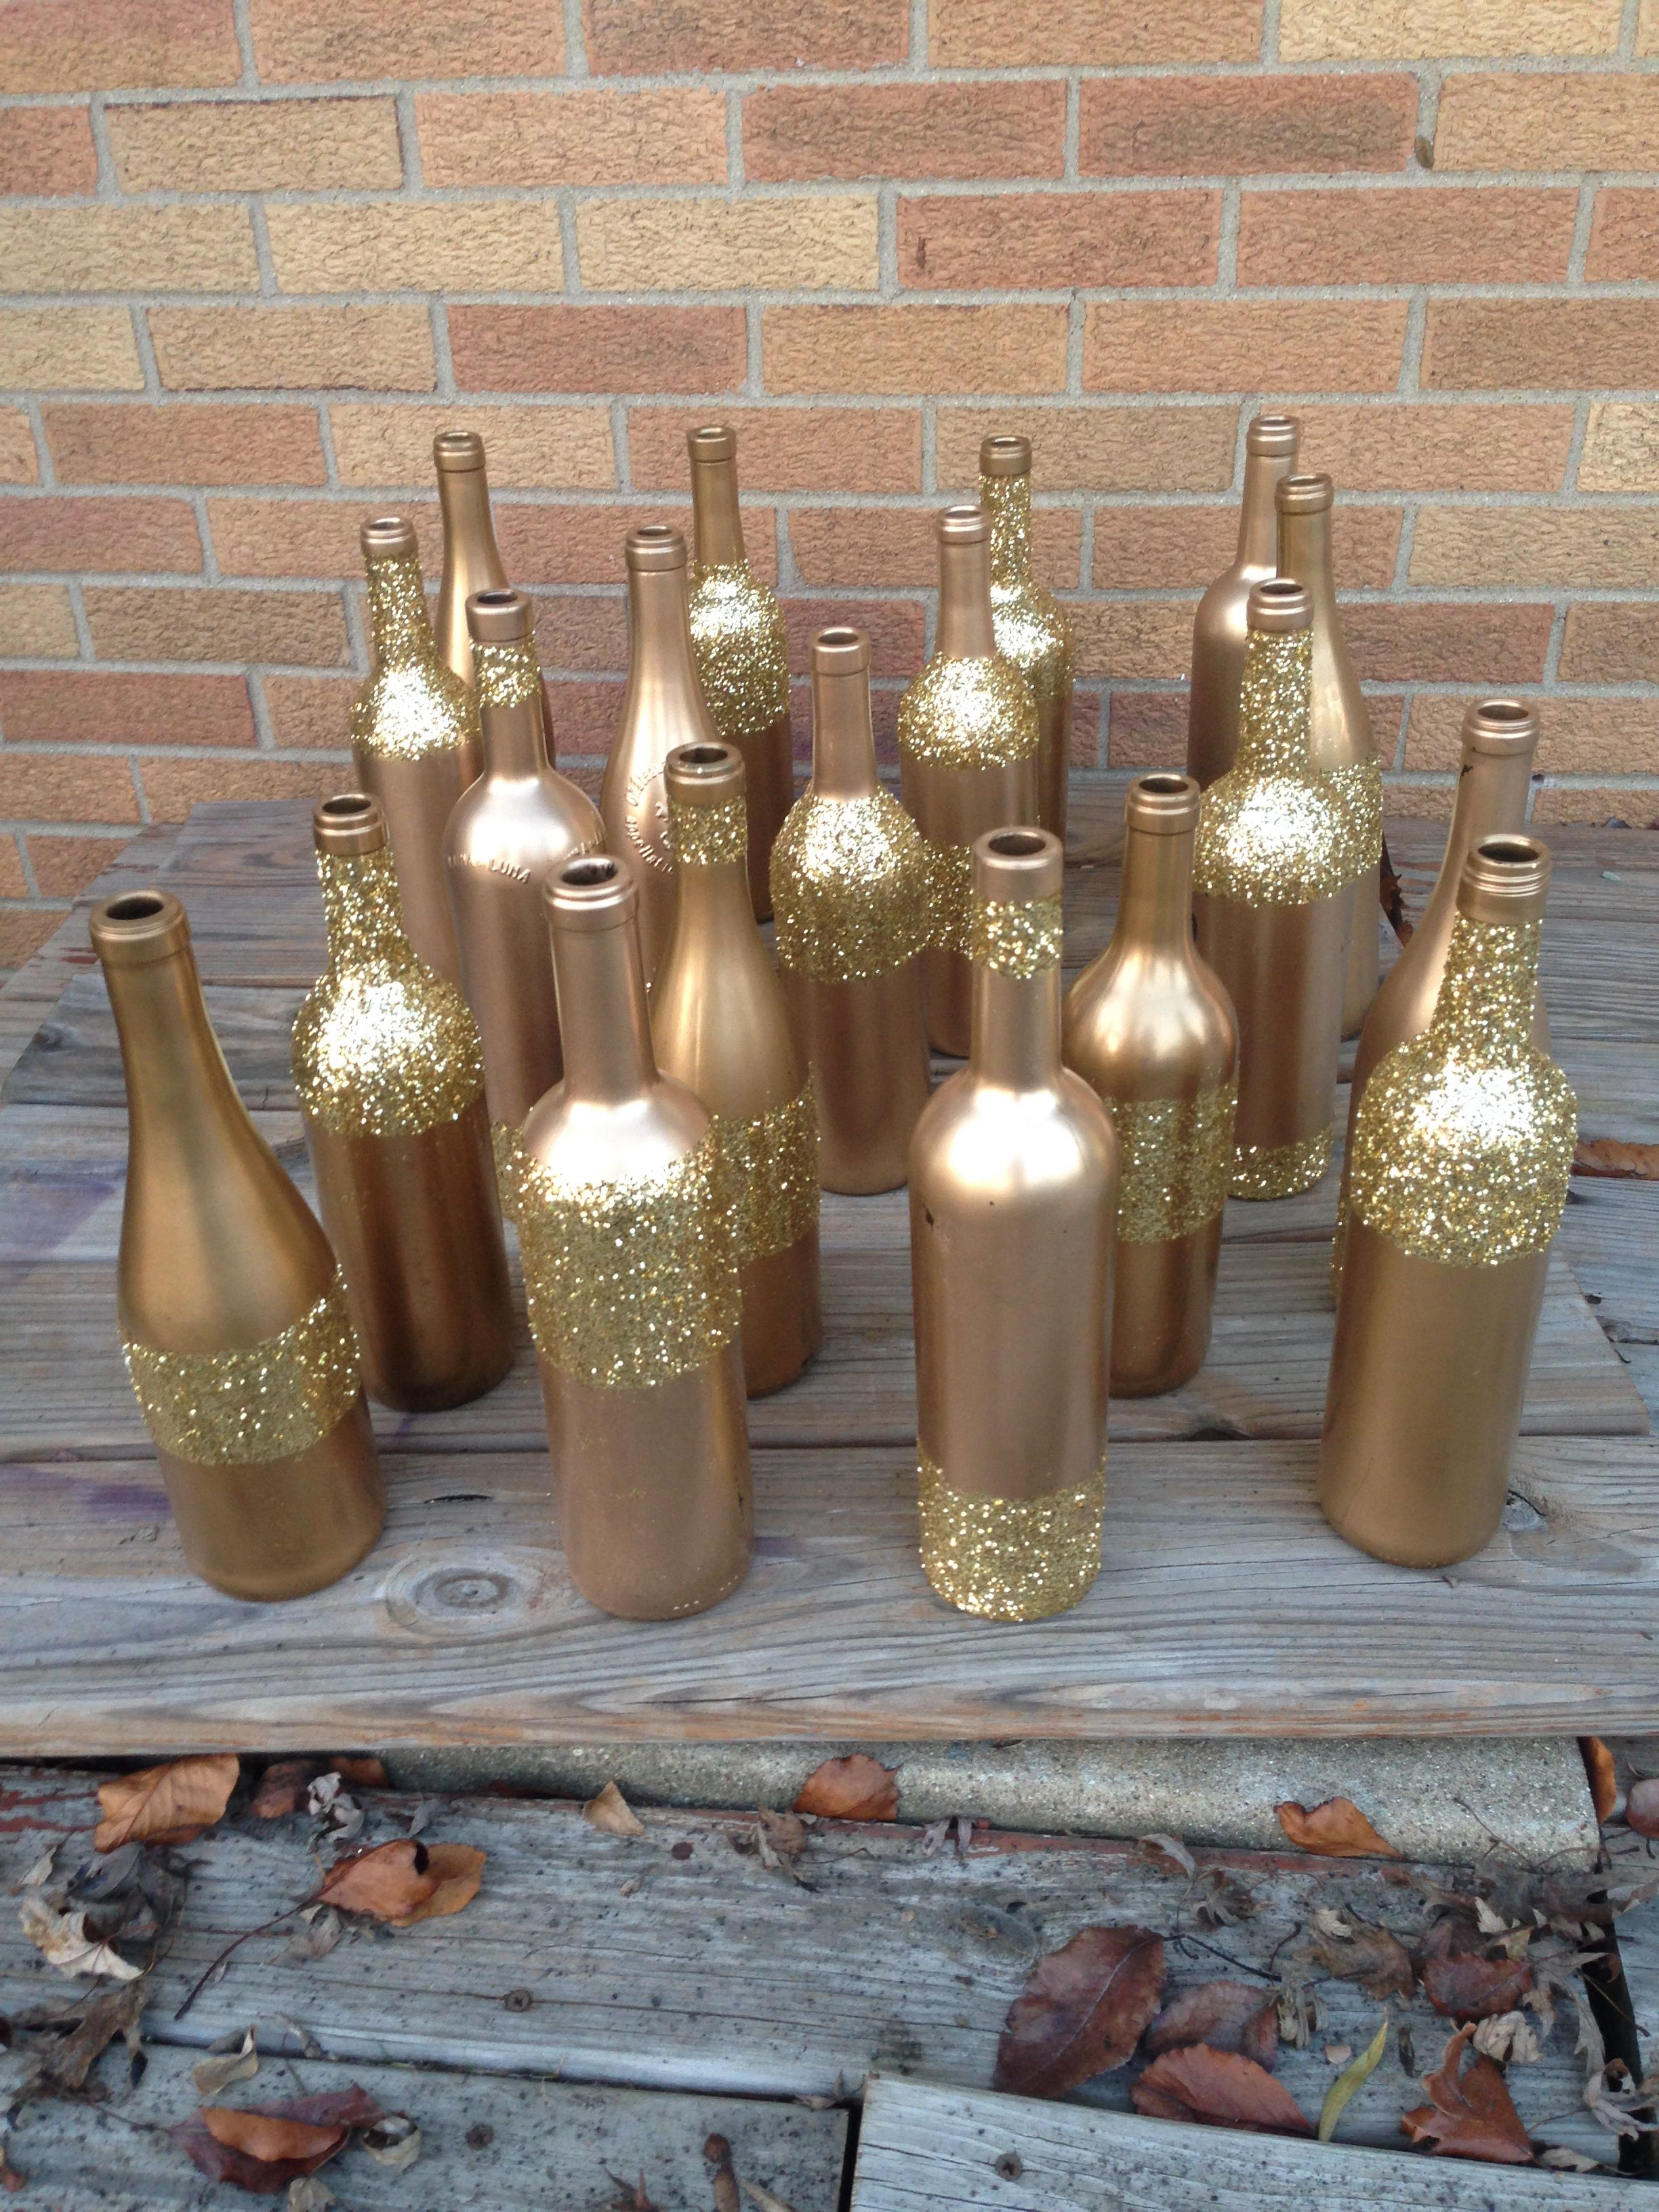 Wedding decorations with feathers  Gold glitter wine bottles for centerpieces  Decor  Pinterest